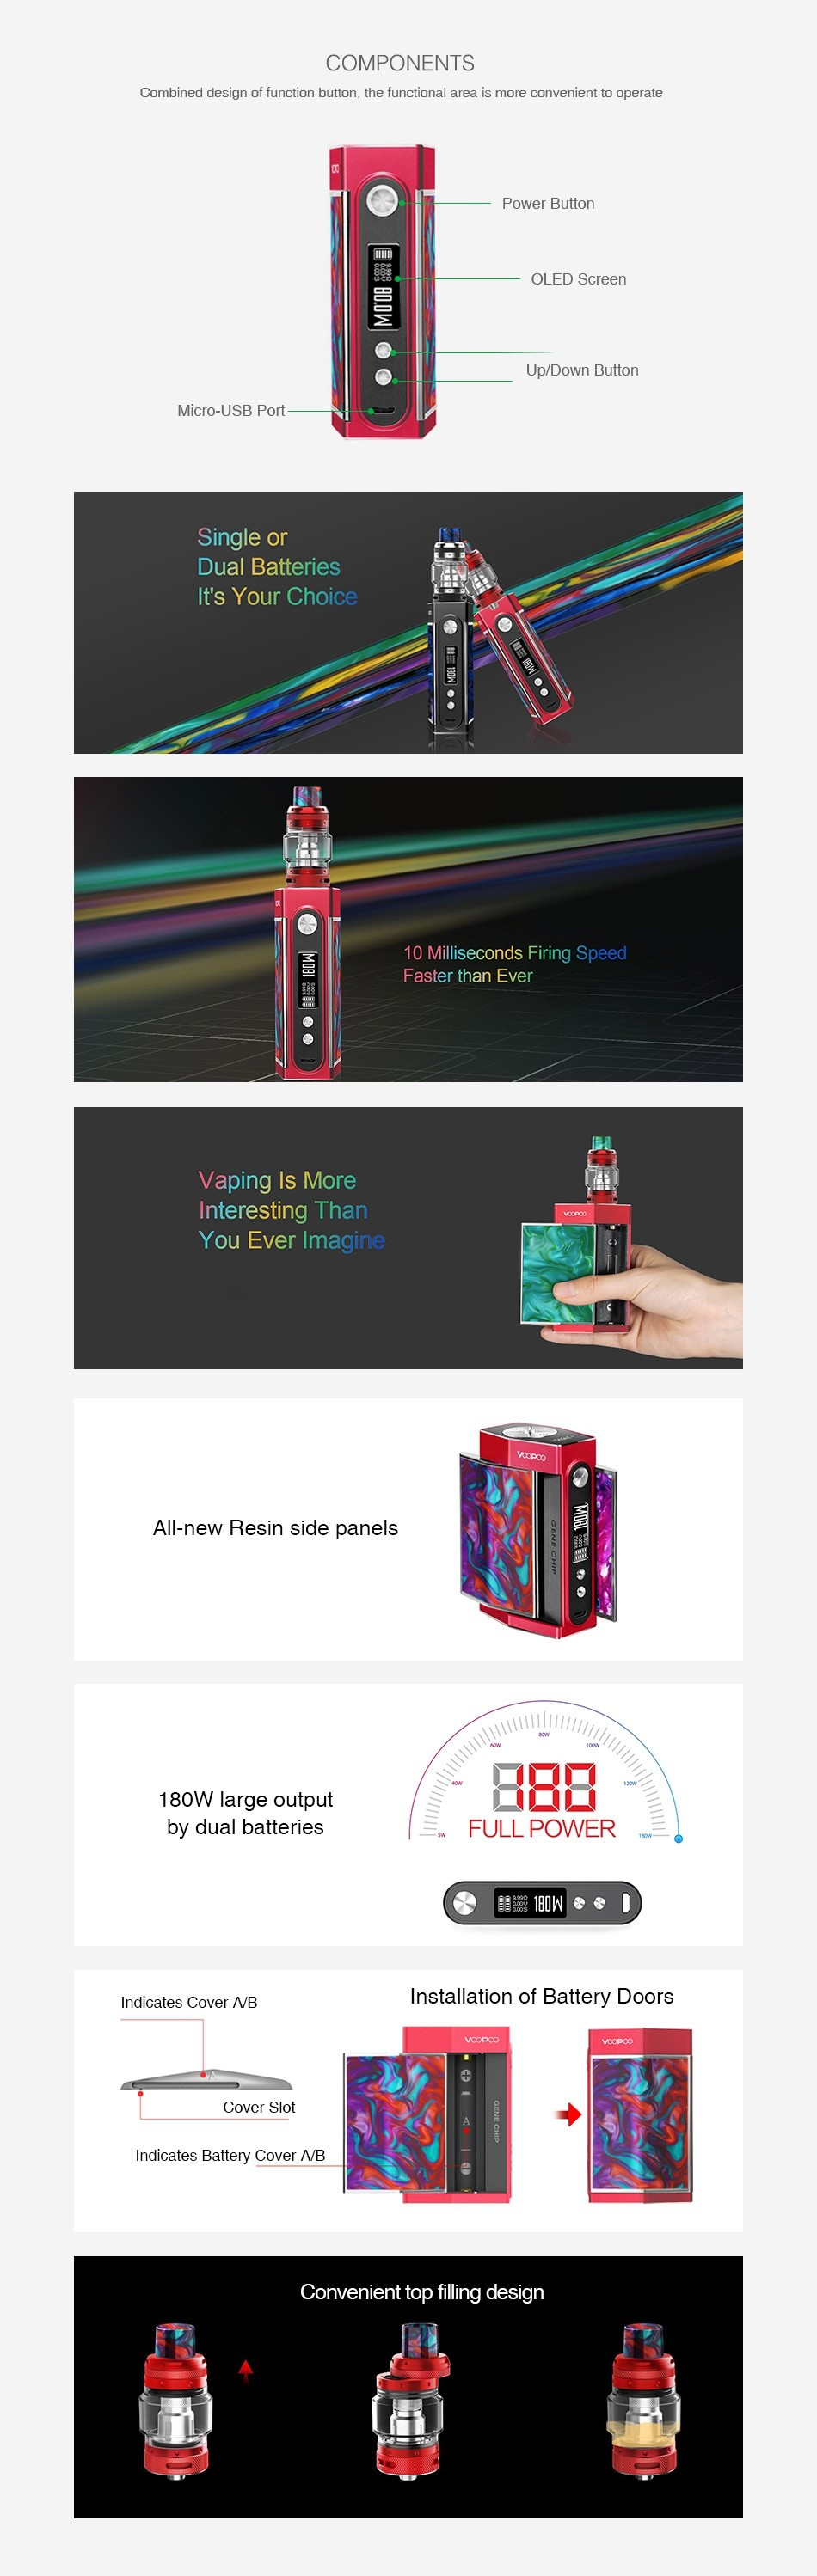 VOOPOO TOO Resin 180W TC Kit with UFORCE T1 COMPONENTS Combined design of tunction button  the functional area is more convenient to operate    OLED Scrccn Up Down Butto Micro LISR Port Single or Dual batteries It s Your Choice 10 Milliseconds Firing Speed Faster than Ever Vaping Is More Interesting Than You ever imagine All new Resin side panels 180W large output by dual batteries FULL POWER nd catcs cover A Installation of Battery Doors Convenient top filling design